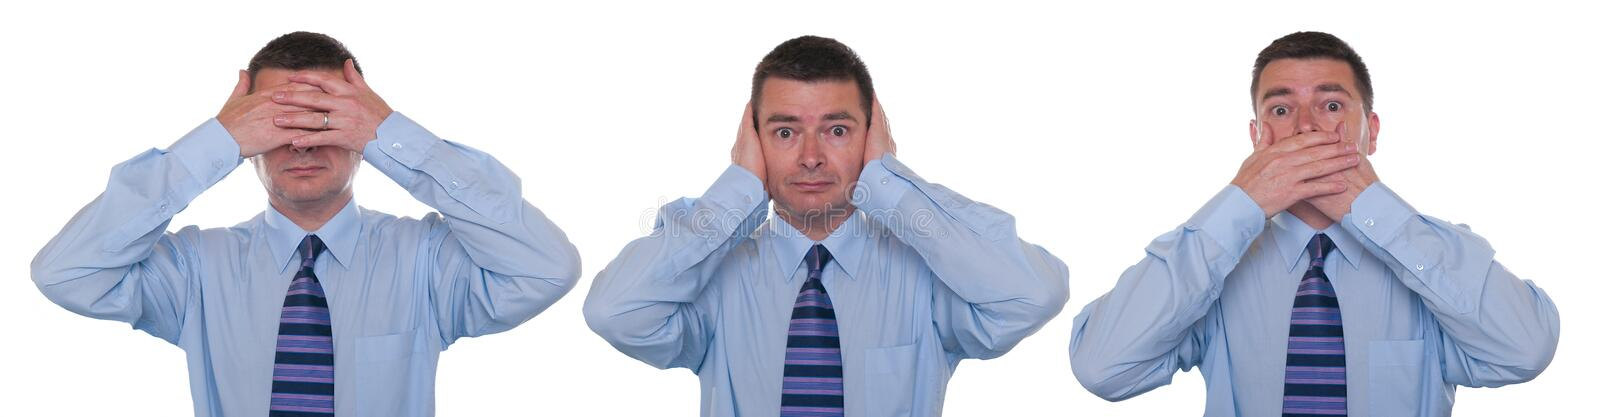 Download See, hear, speak no evil stock image. Image of photography - 16352803